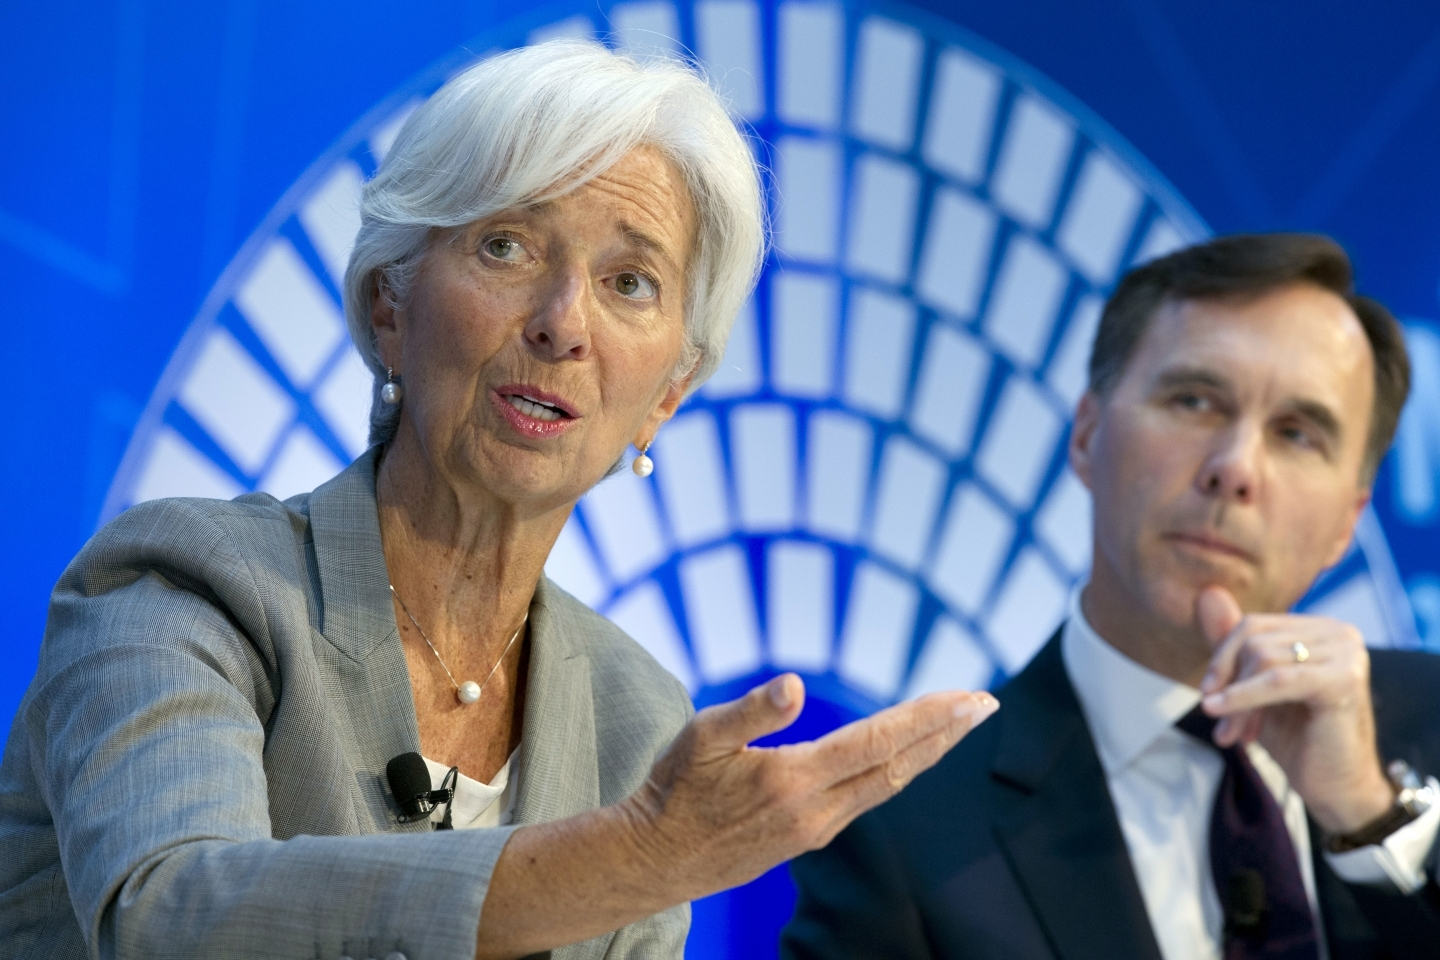 IMF Managing Director Christine Lagarde and Canada Finance Minister William Morneau at the IMF/World Bank meetings in Washington, Thursday, Oct. 12, 2017. (AP Photo/Jose Luis Magana)